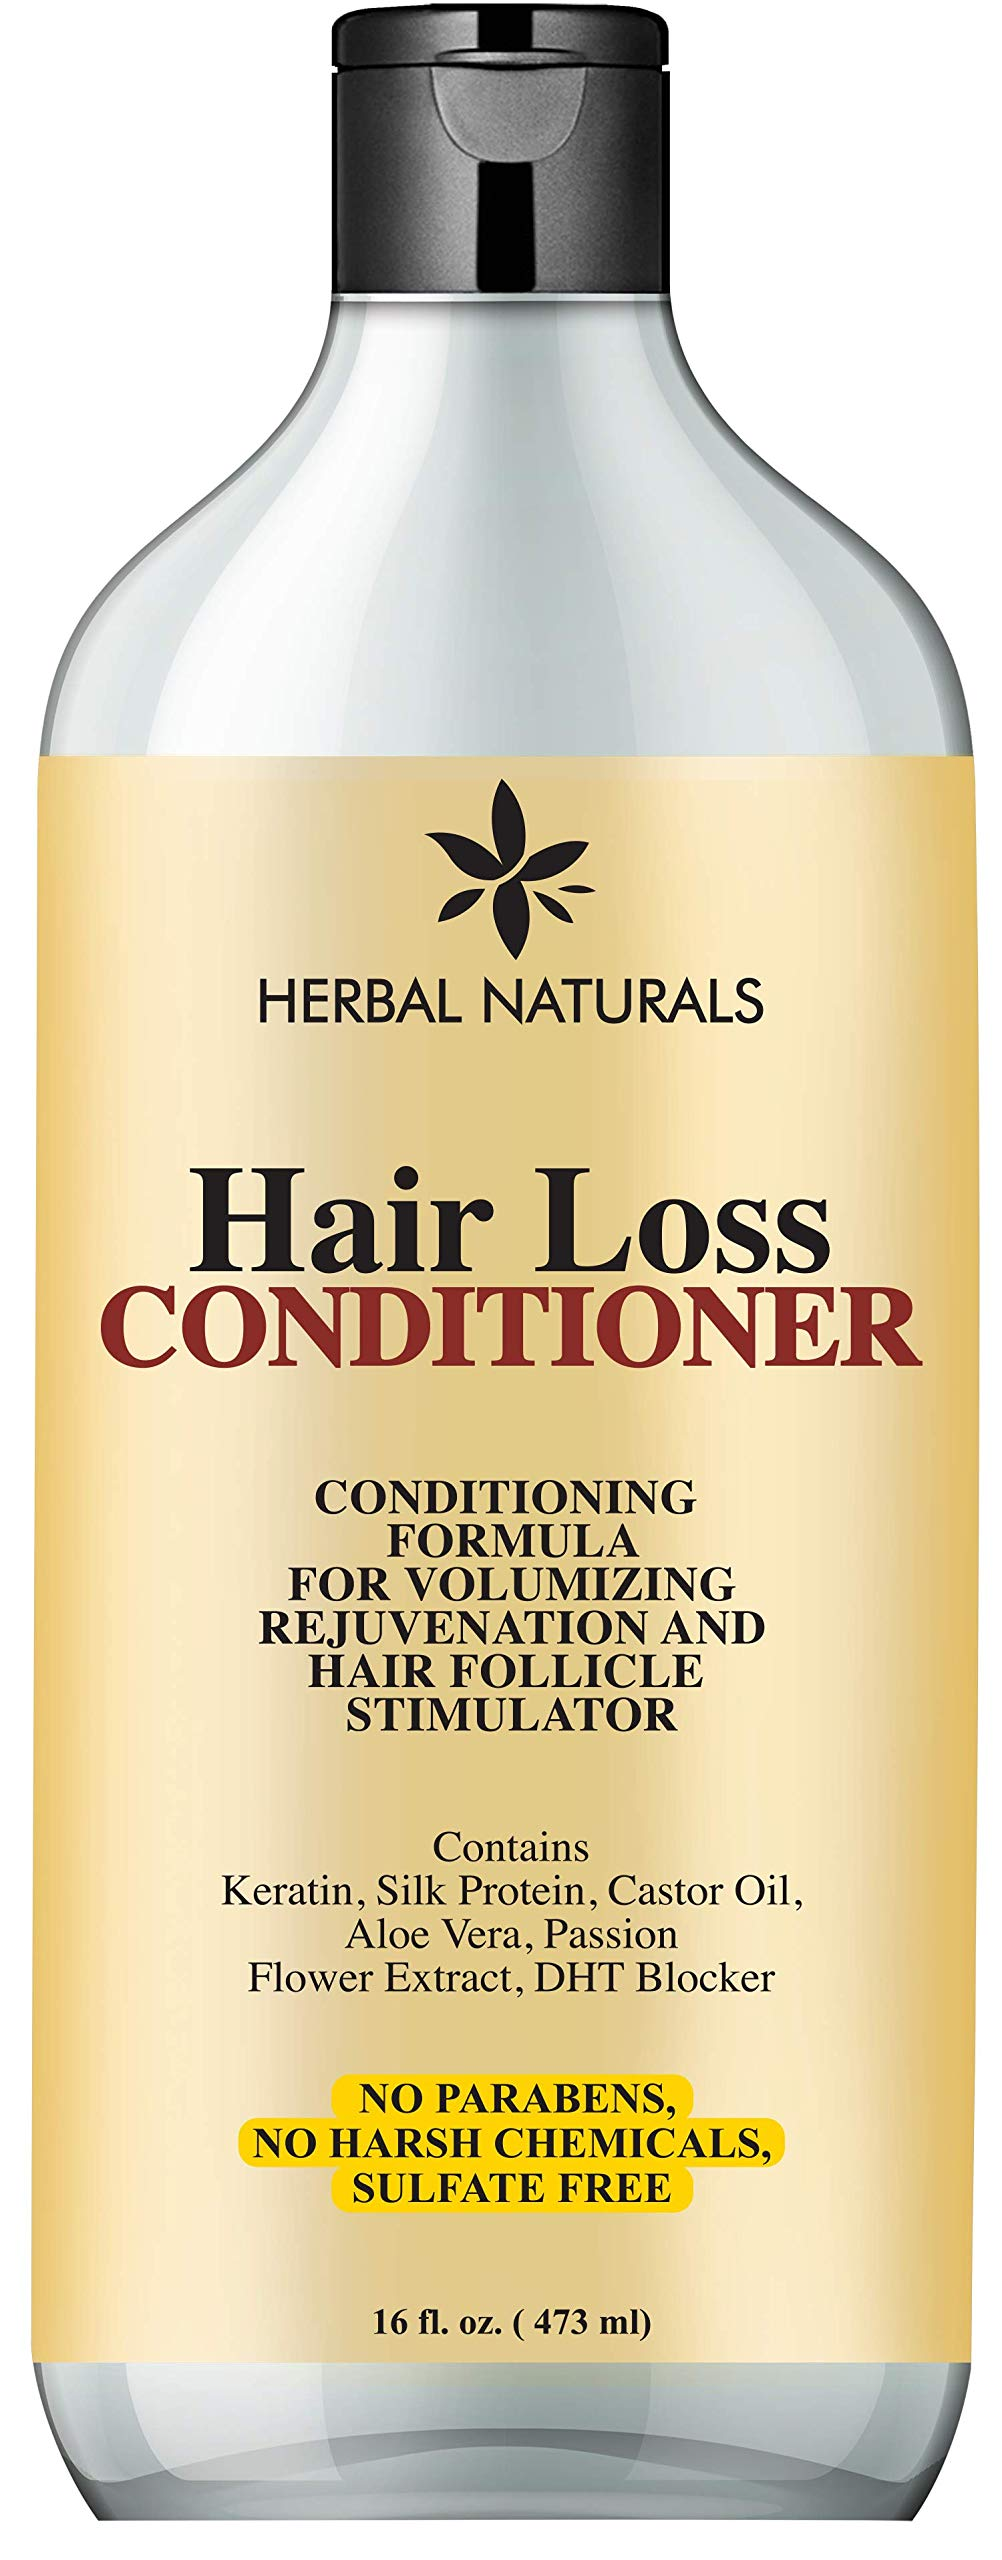 Hair Loss Conditioner Infused with Keratin Silk Protein, Natural Ingredients - Provides Hair Growth Stimulation, Hair Thickening, Nourishment and adds Volume, For All Hair Types Men and Women 16 fl Oz by HERBAL NATURALS